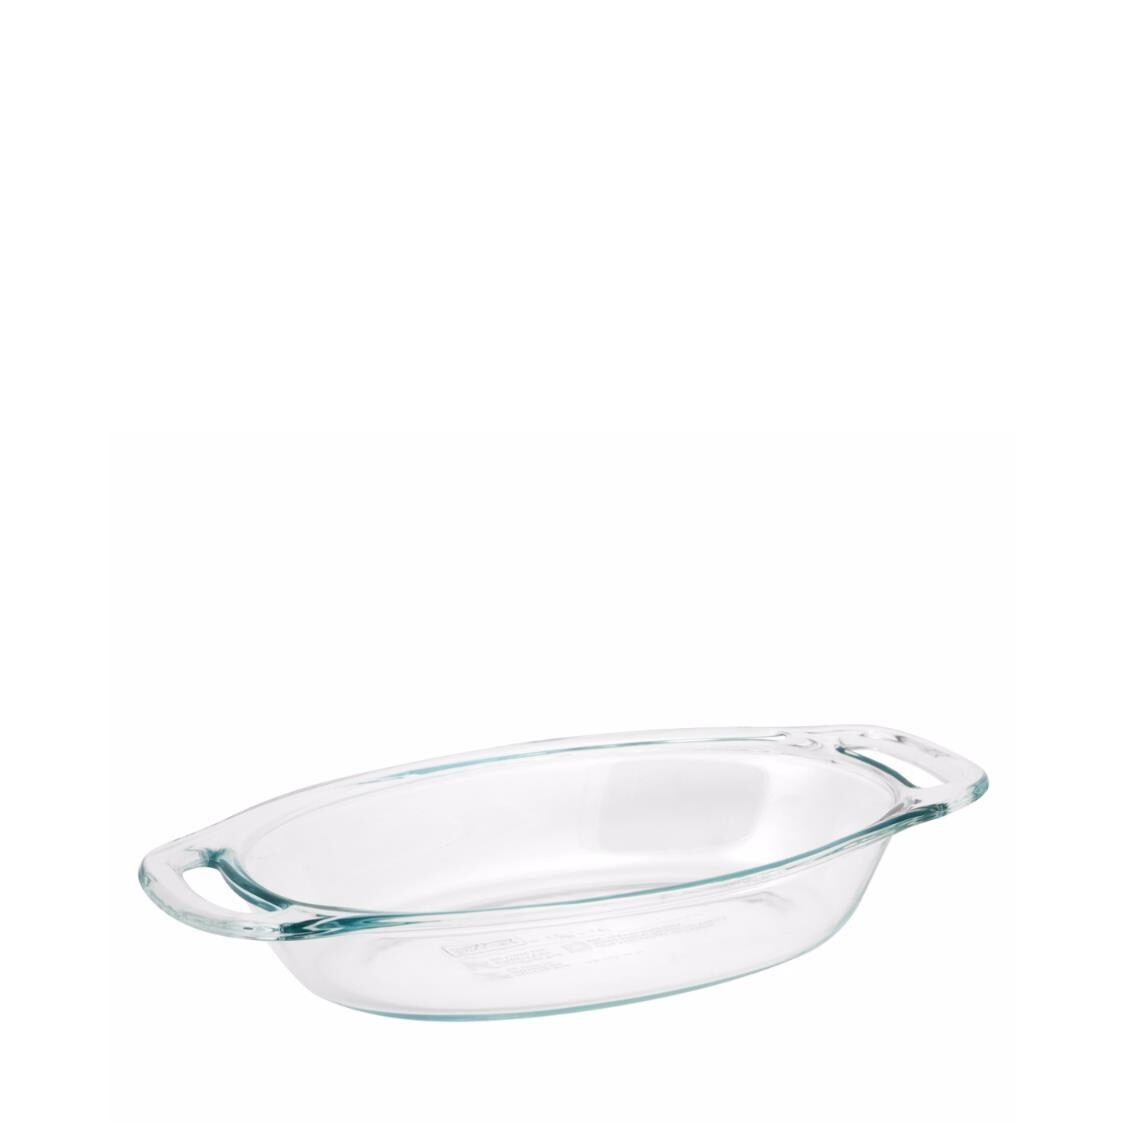 Pyrex Oval Dish